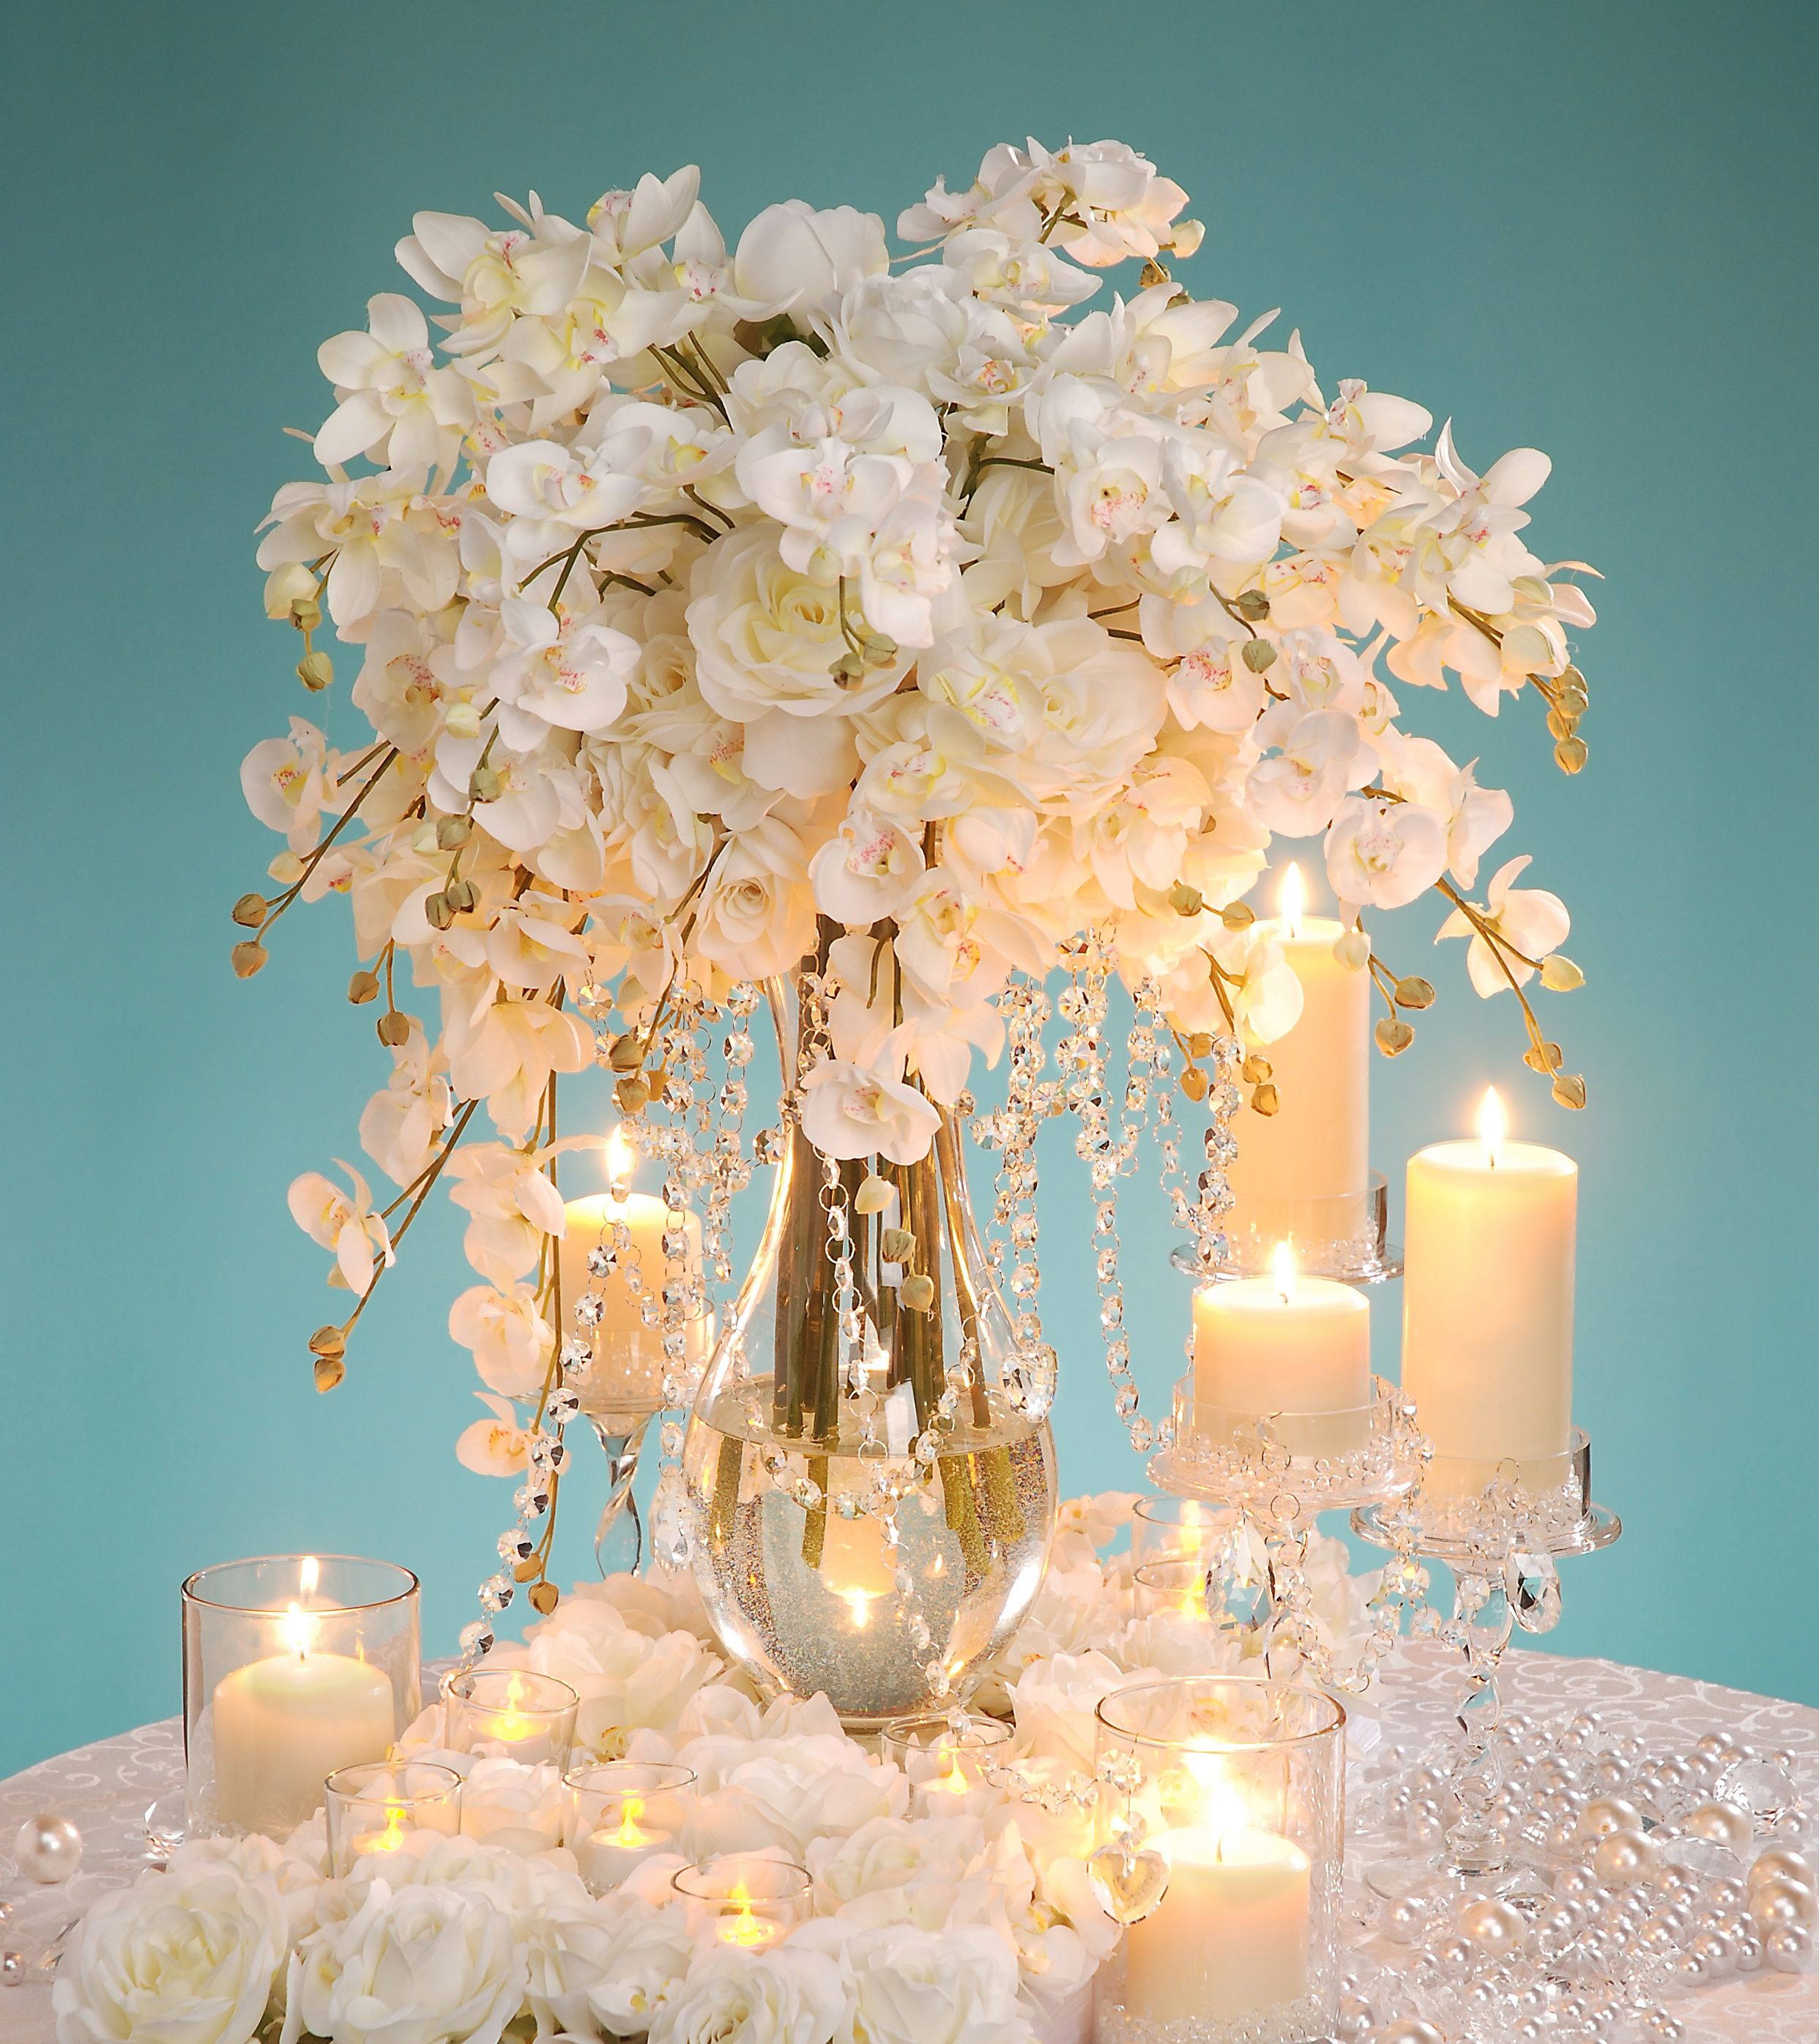 Celebrity Wedding Flowers Centerpieces: Pin By Heather Watson On Party - Centerpiece Ideas